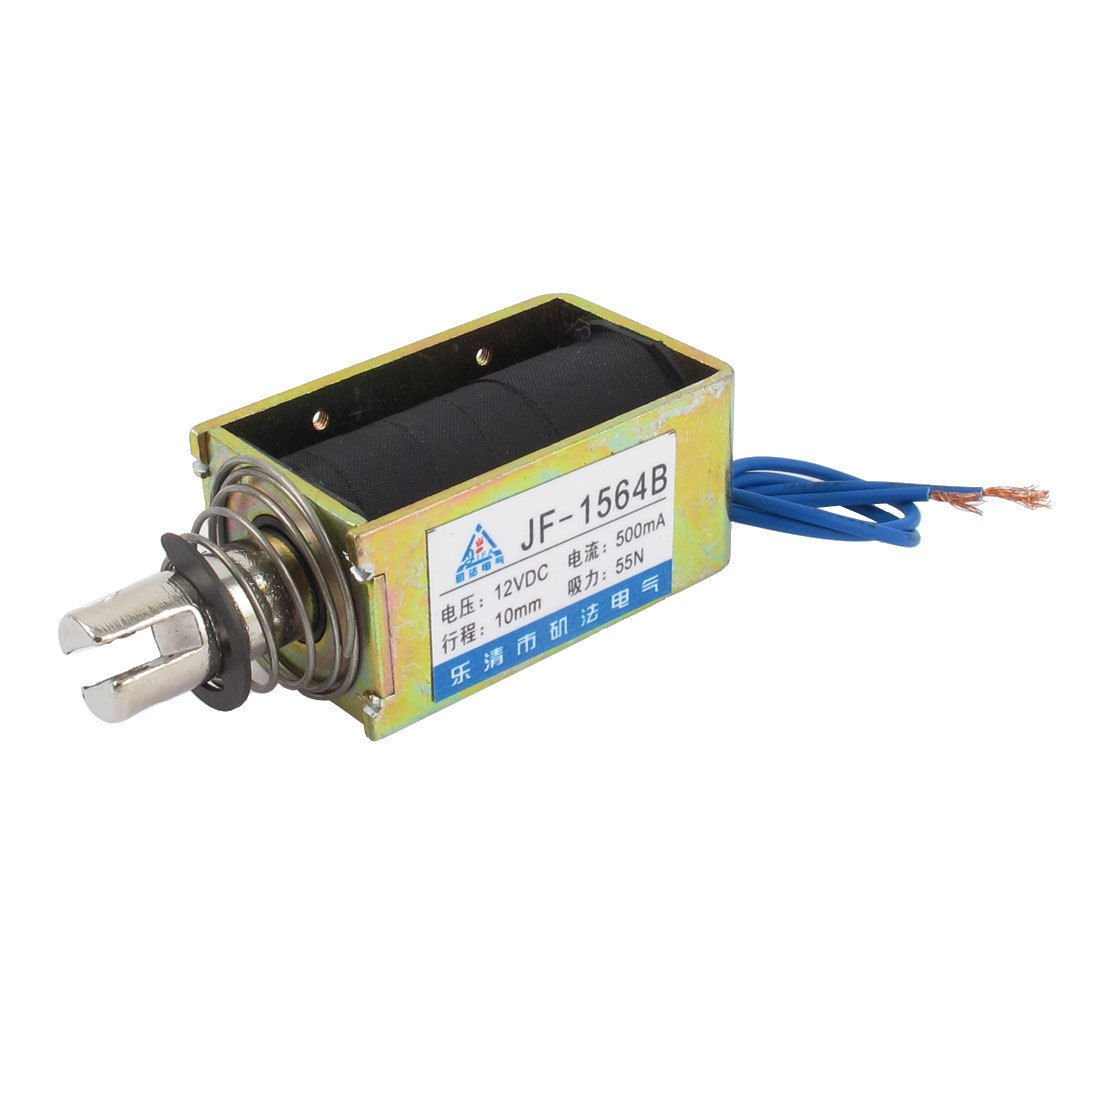 DC 12V 500mA 55N Push Type Open Frame Actuator Solenoid Electromagnet JF-1564B